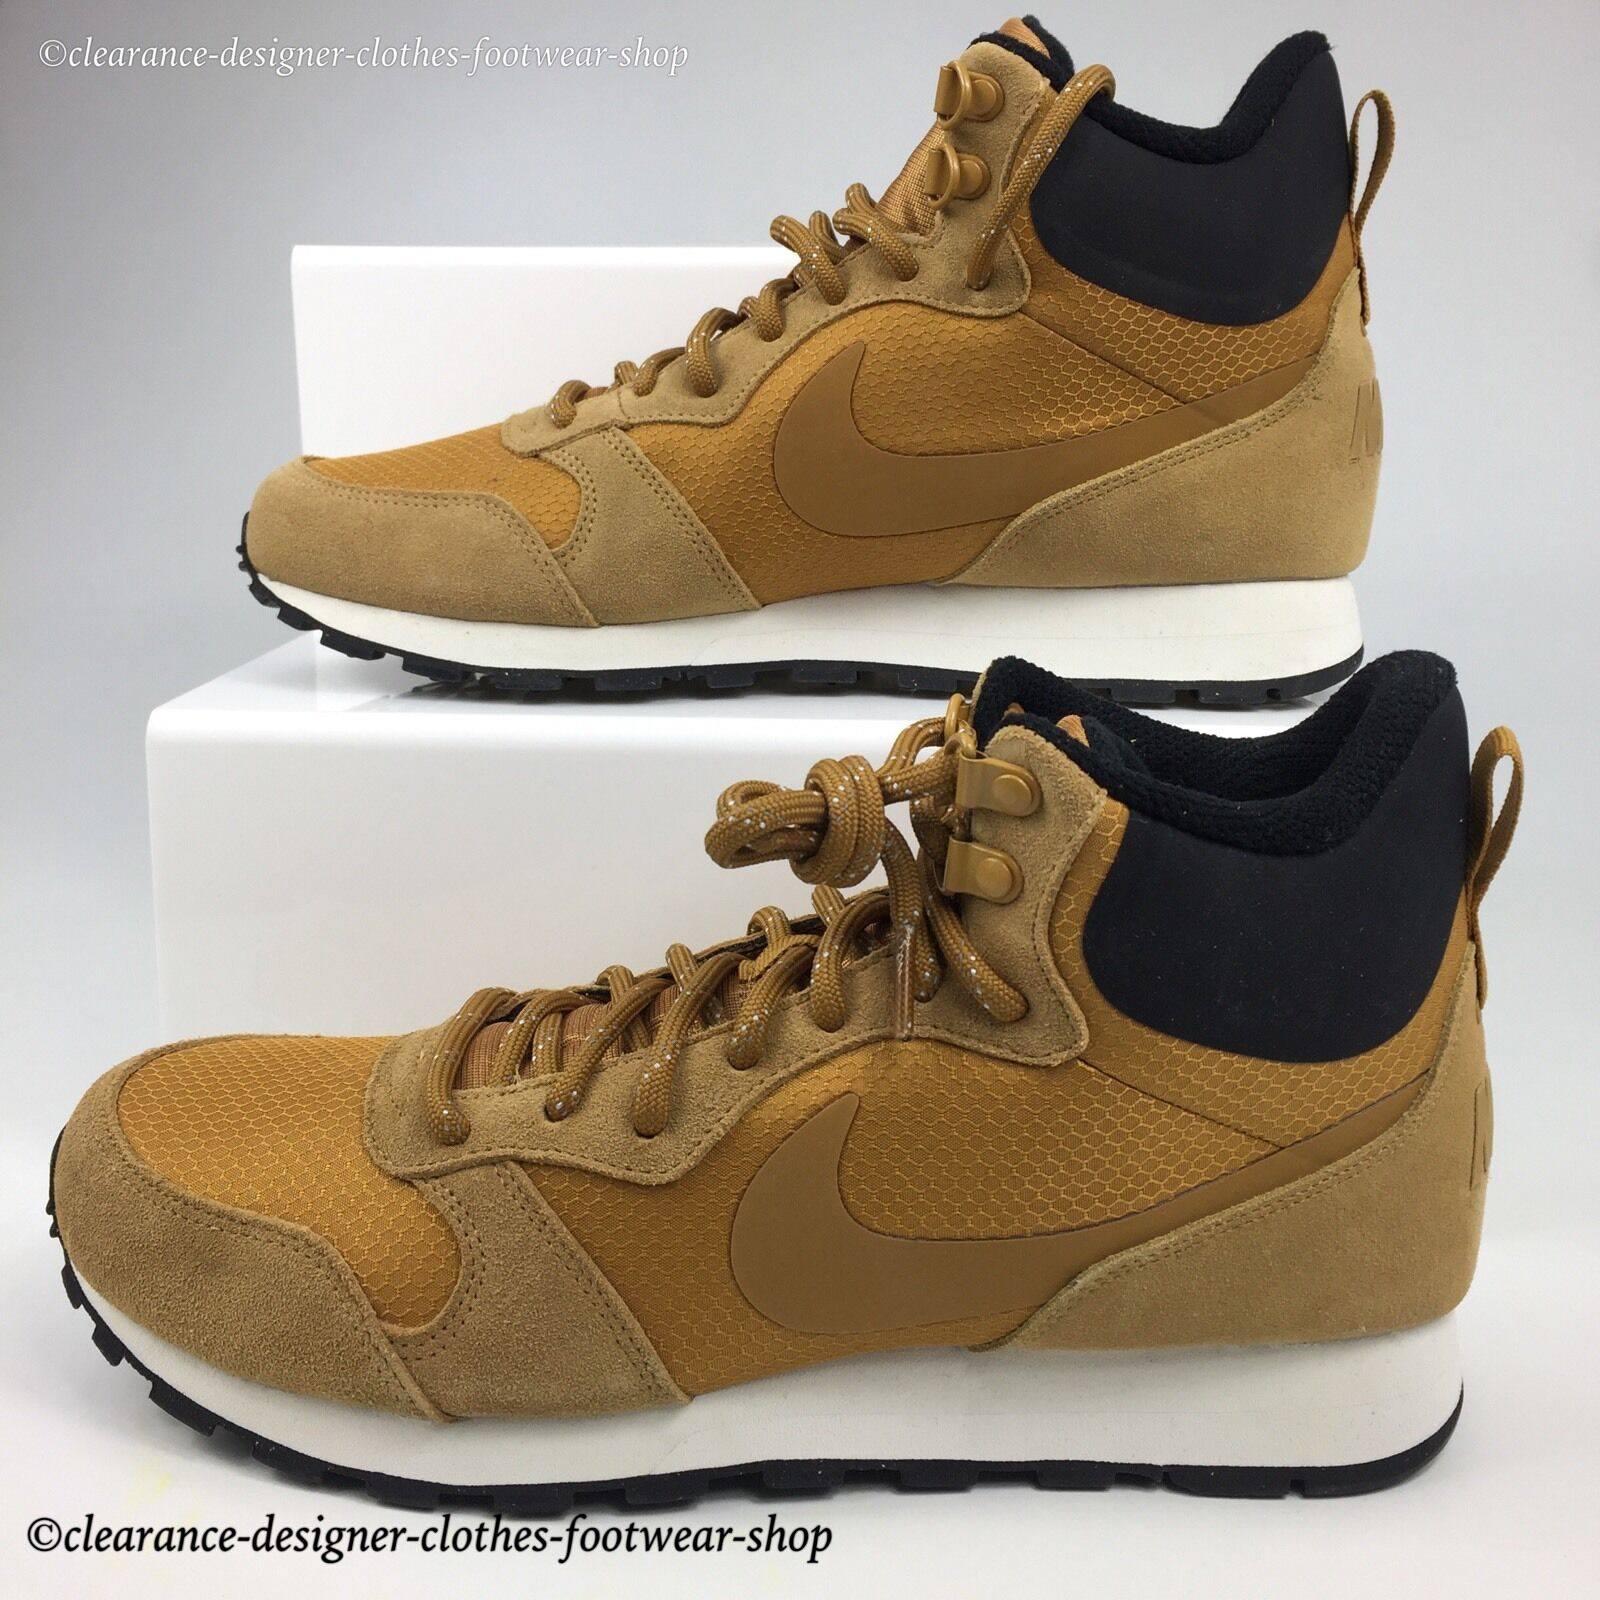 NIKE MD RUNNER CASUAL 2 MID PREMIUM TRAINERS NEW Hommes CASUAL RUNNER WALKING Chaussure90 38eb9e